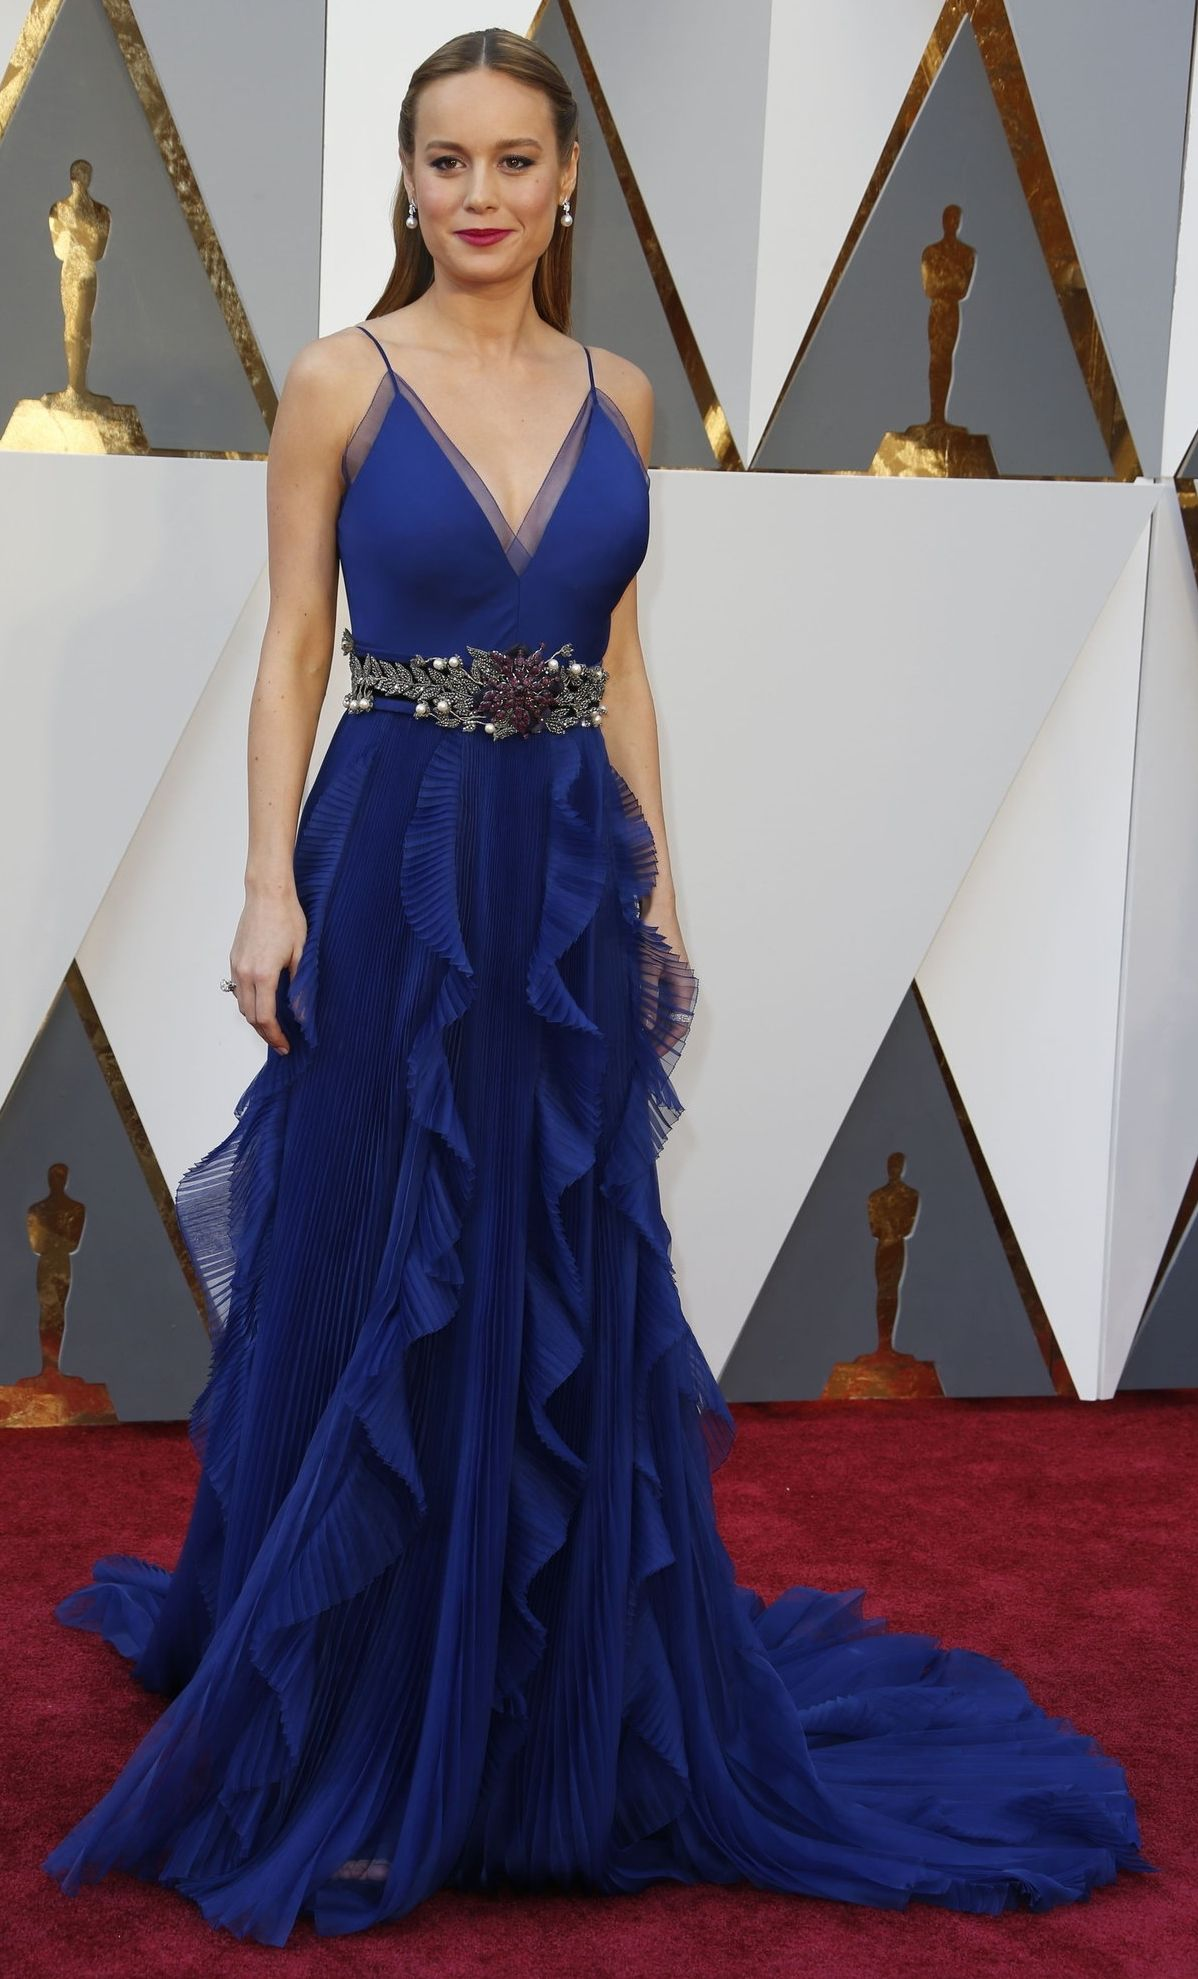 ae58546d7e3a Brie Larson in Gucci on the Oscars red carpet (Photo: Noel West for The New  York Times)